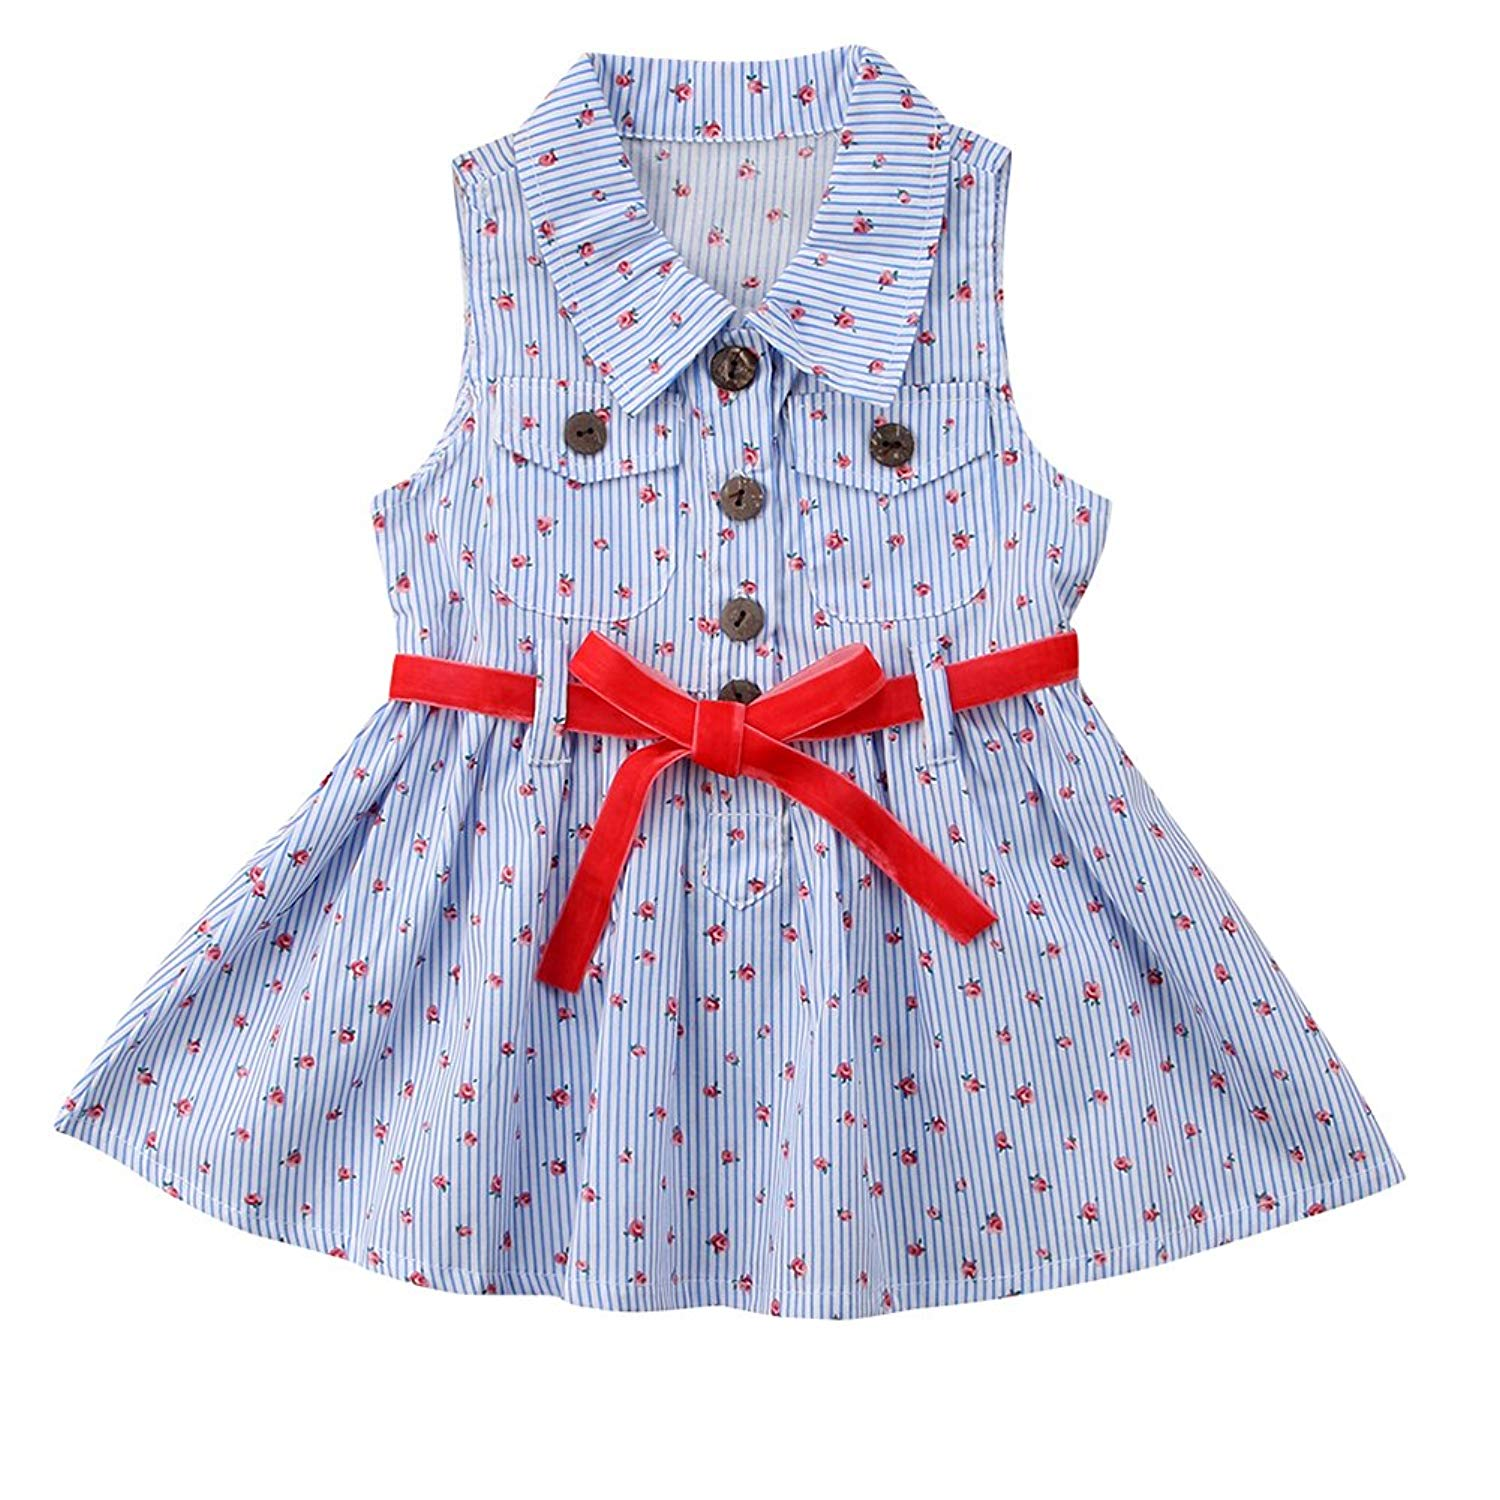 SHITOU Kid Baby Girls Princess Dress Embroidery Solid Sleeveless Formal Dresses